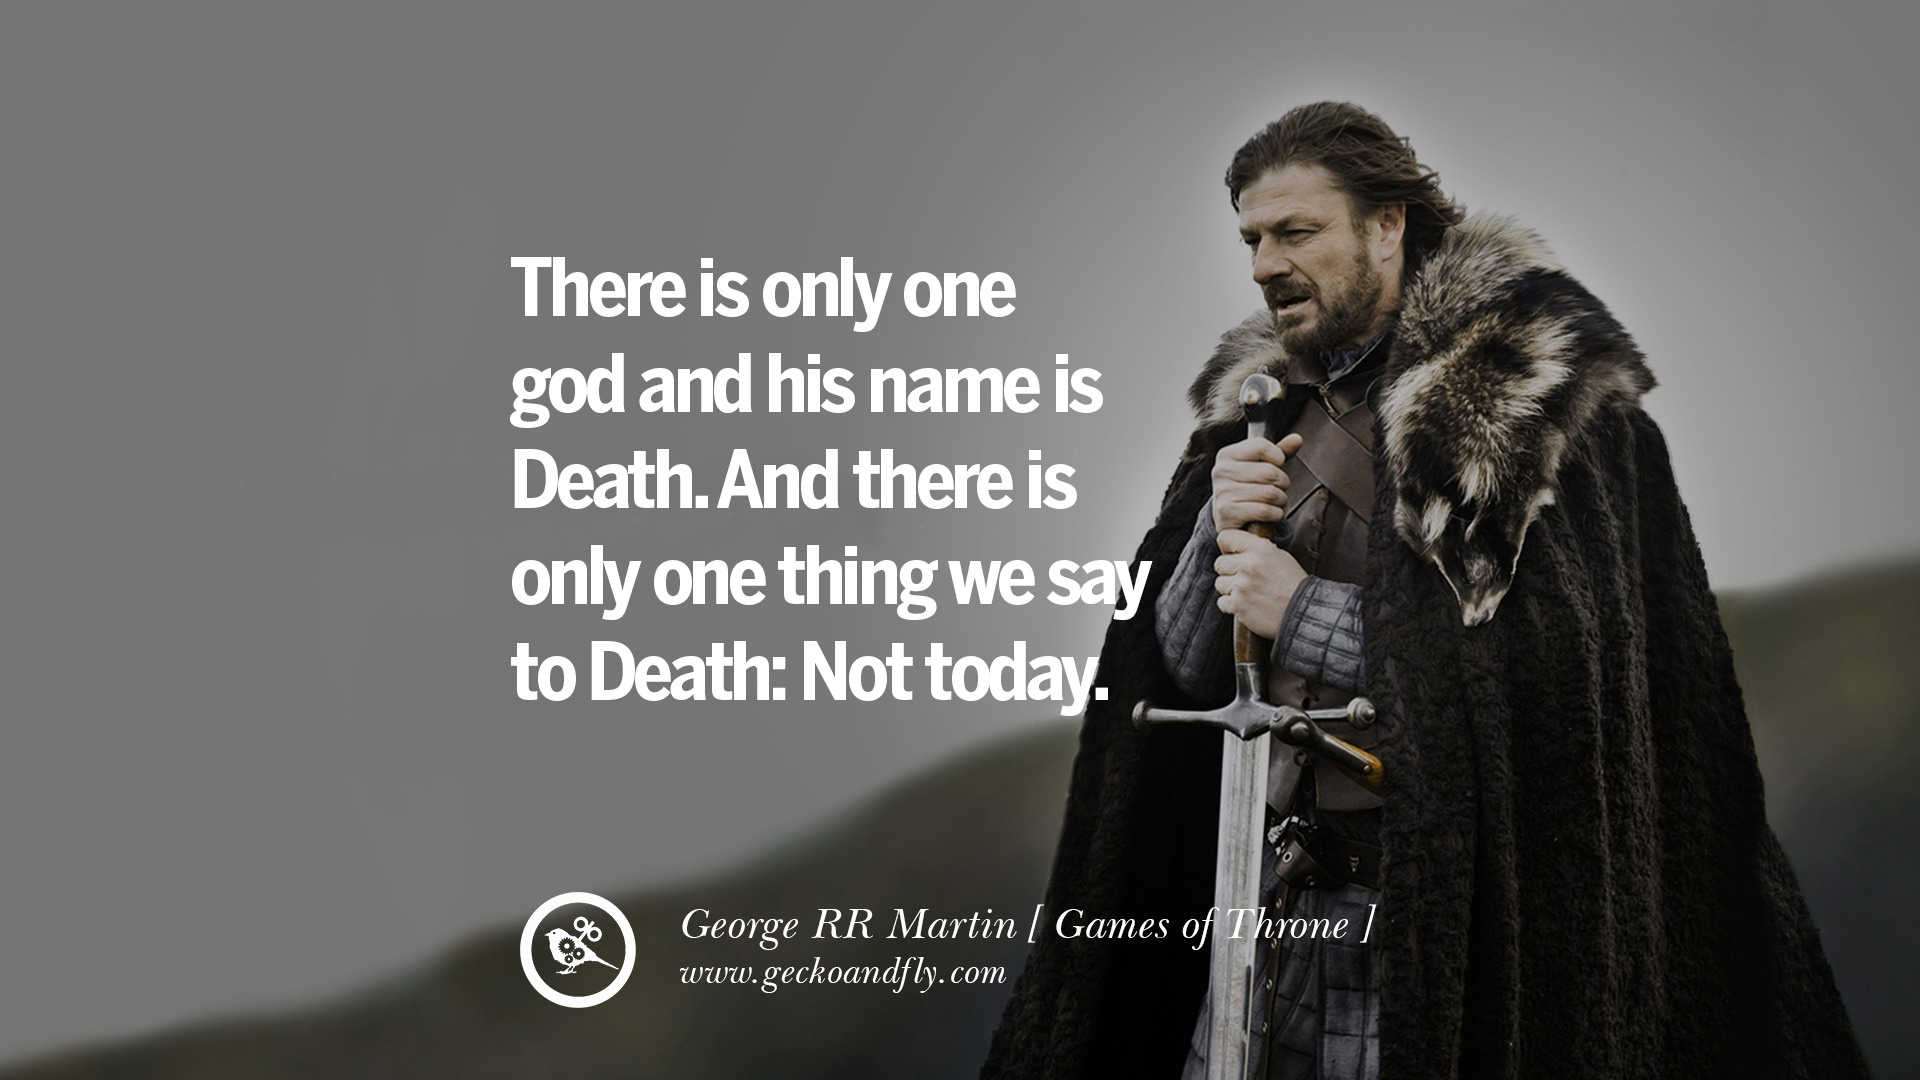 12 A Game Of Thrones Quotes By George Rr Martin Geckoandfly 2018